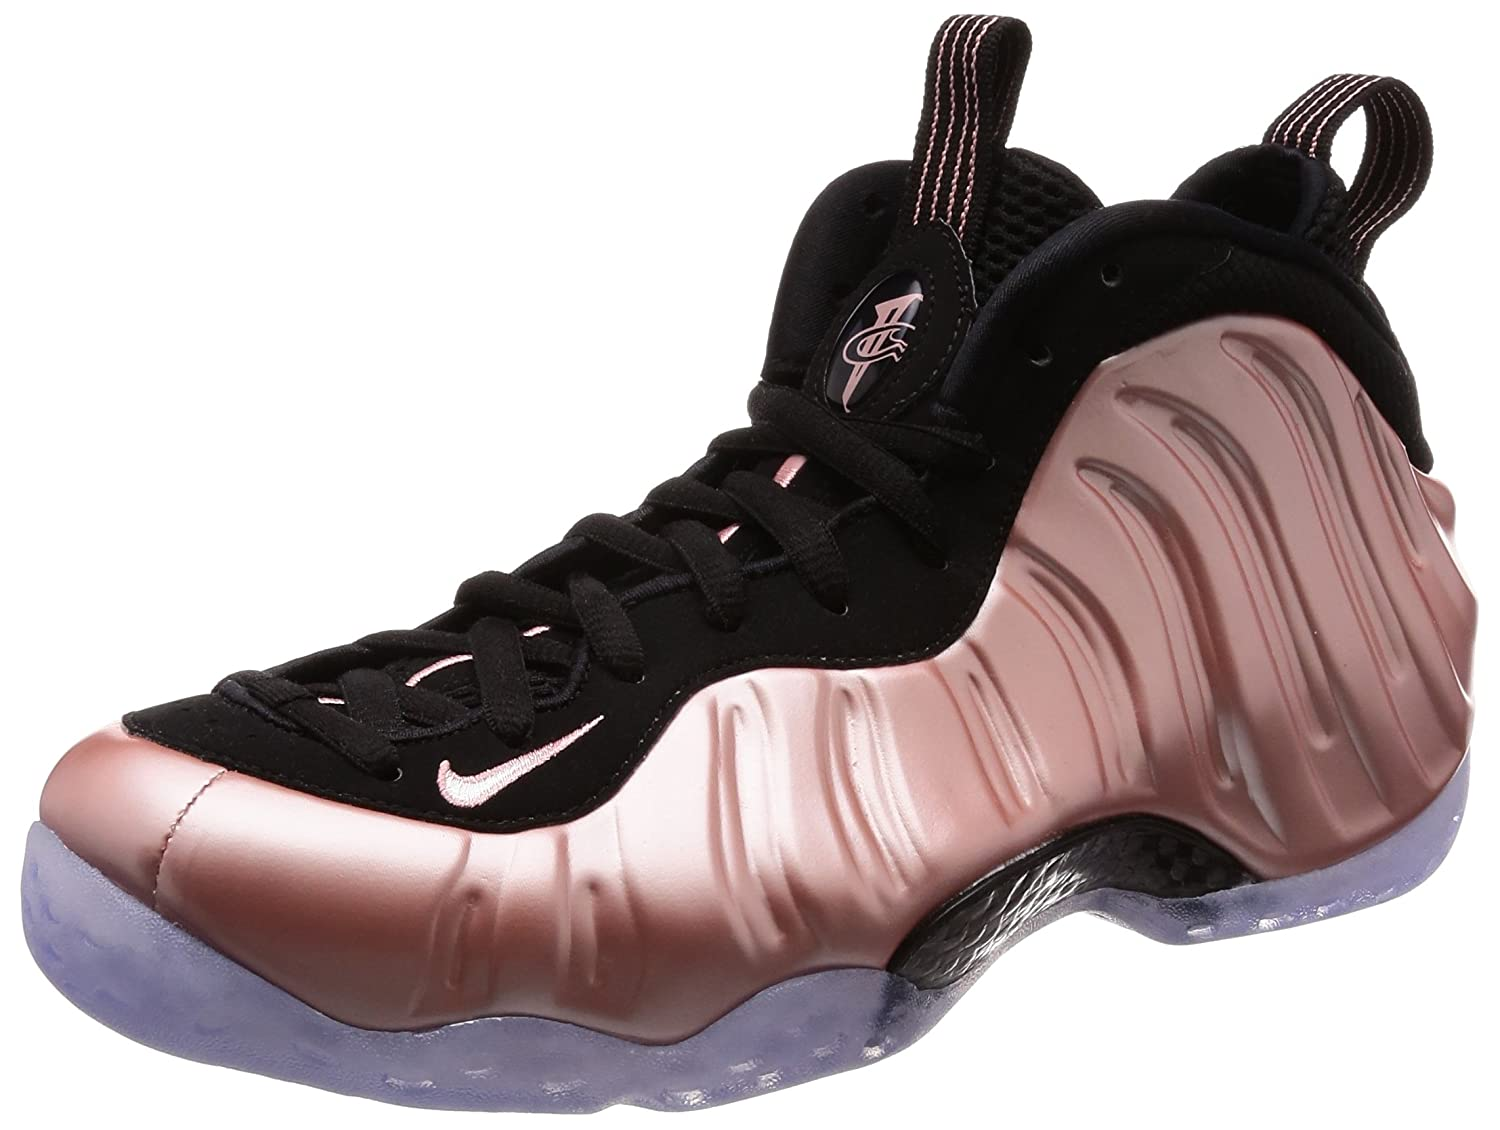 MultiCouleure 45 EU Nike Air Foamposite One, Chaussures de Basketball Homme